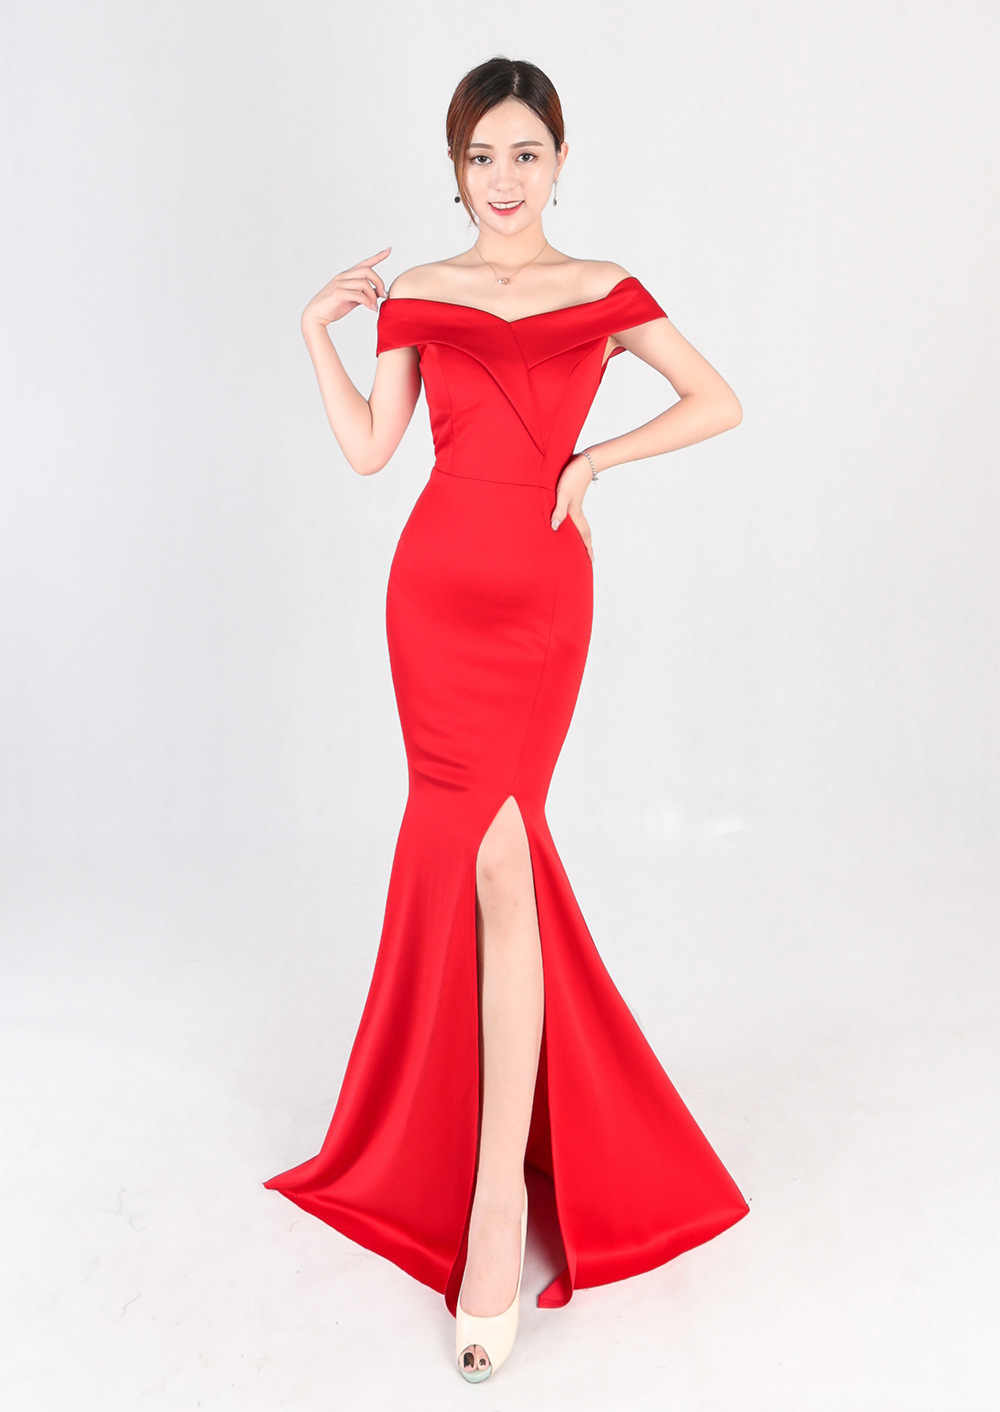 91f45a981bff8 New Simple Mermaid Evening Gown Elegant High Slit Sexy Boat Neck Off the  Shoulder Prom Dress Long Evening Party Gown Robe Soriee